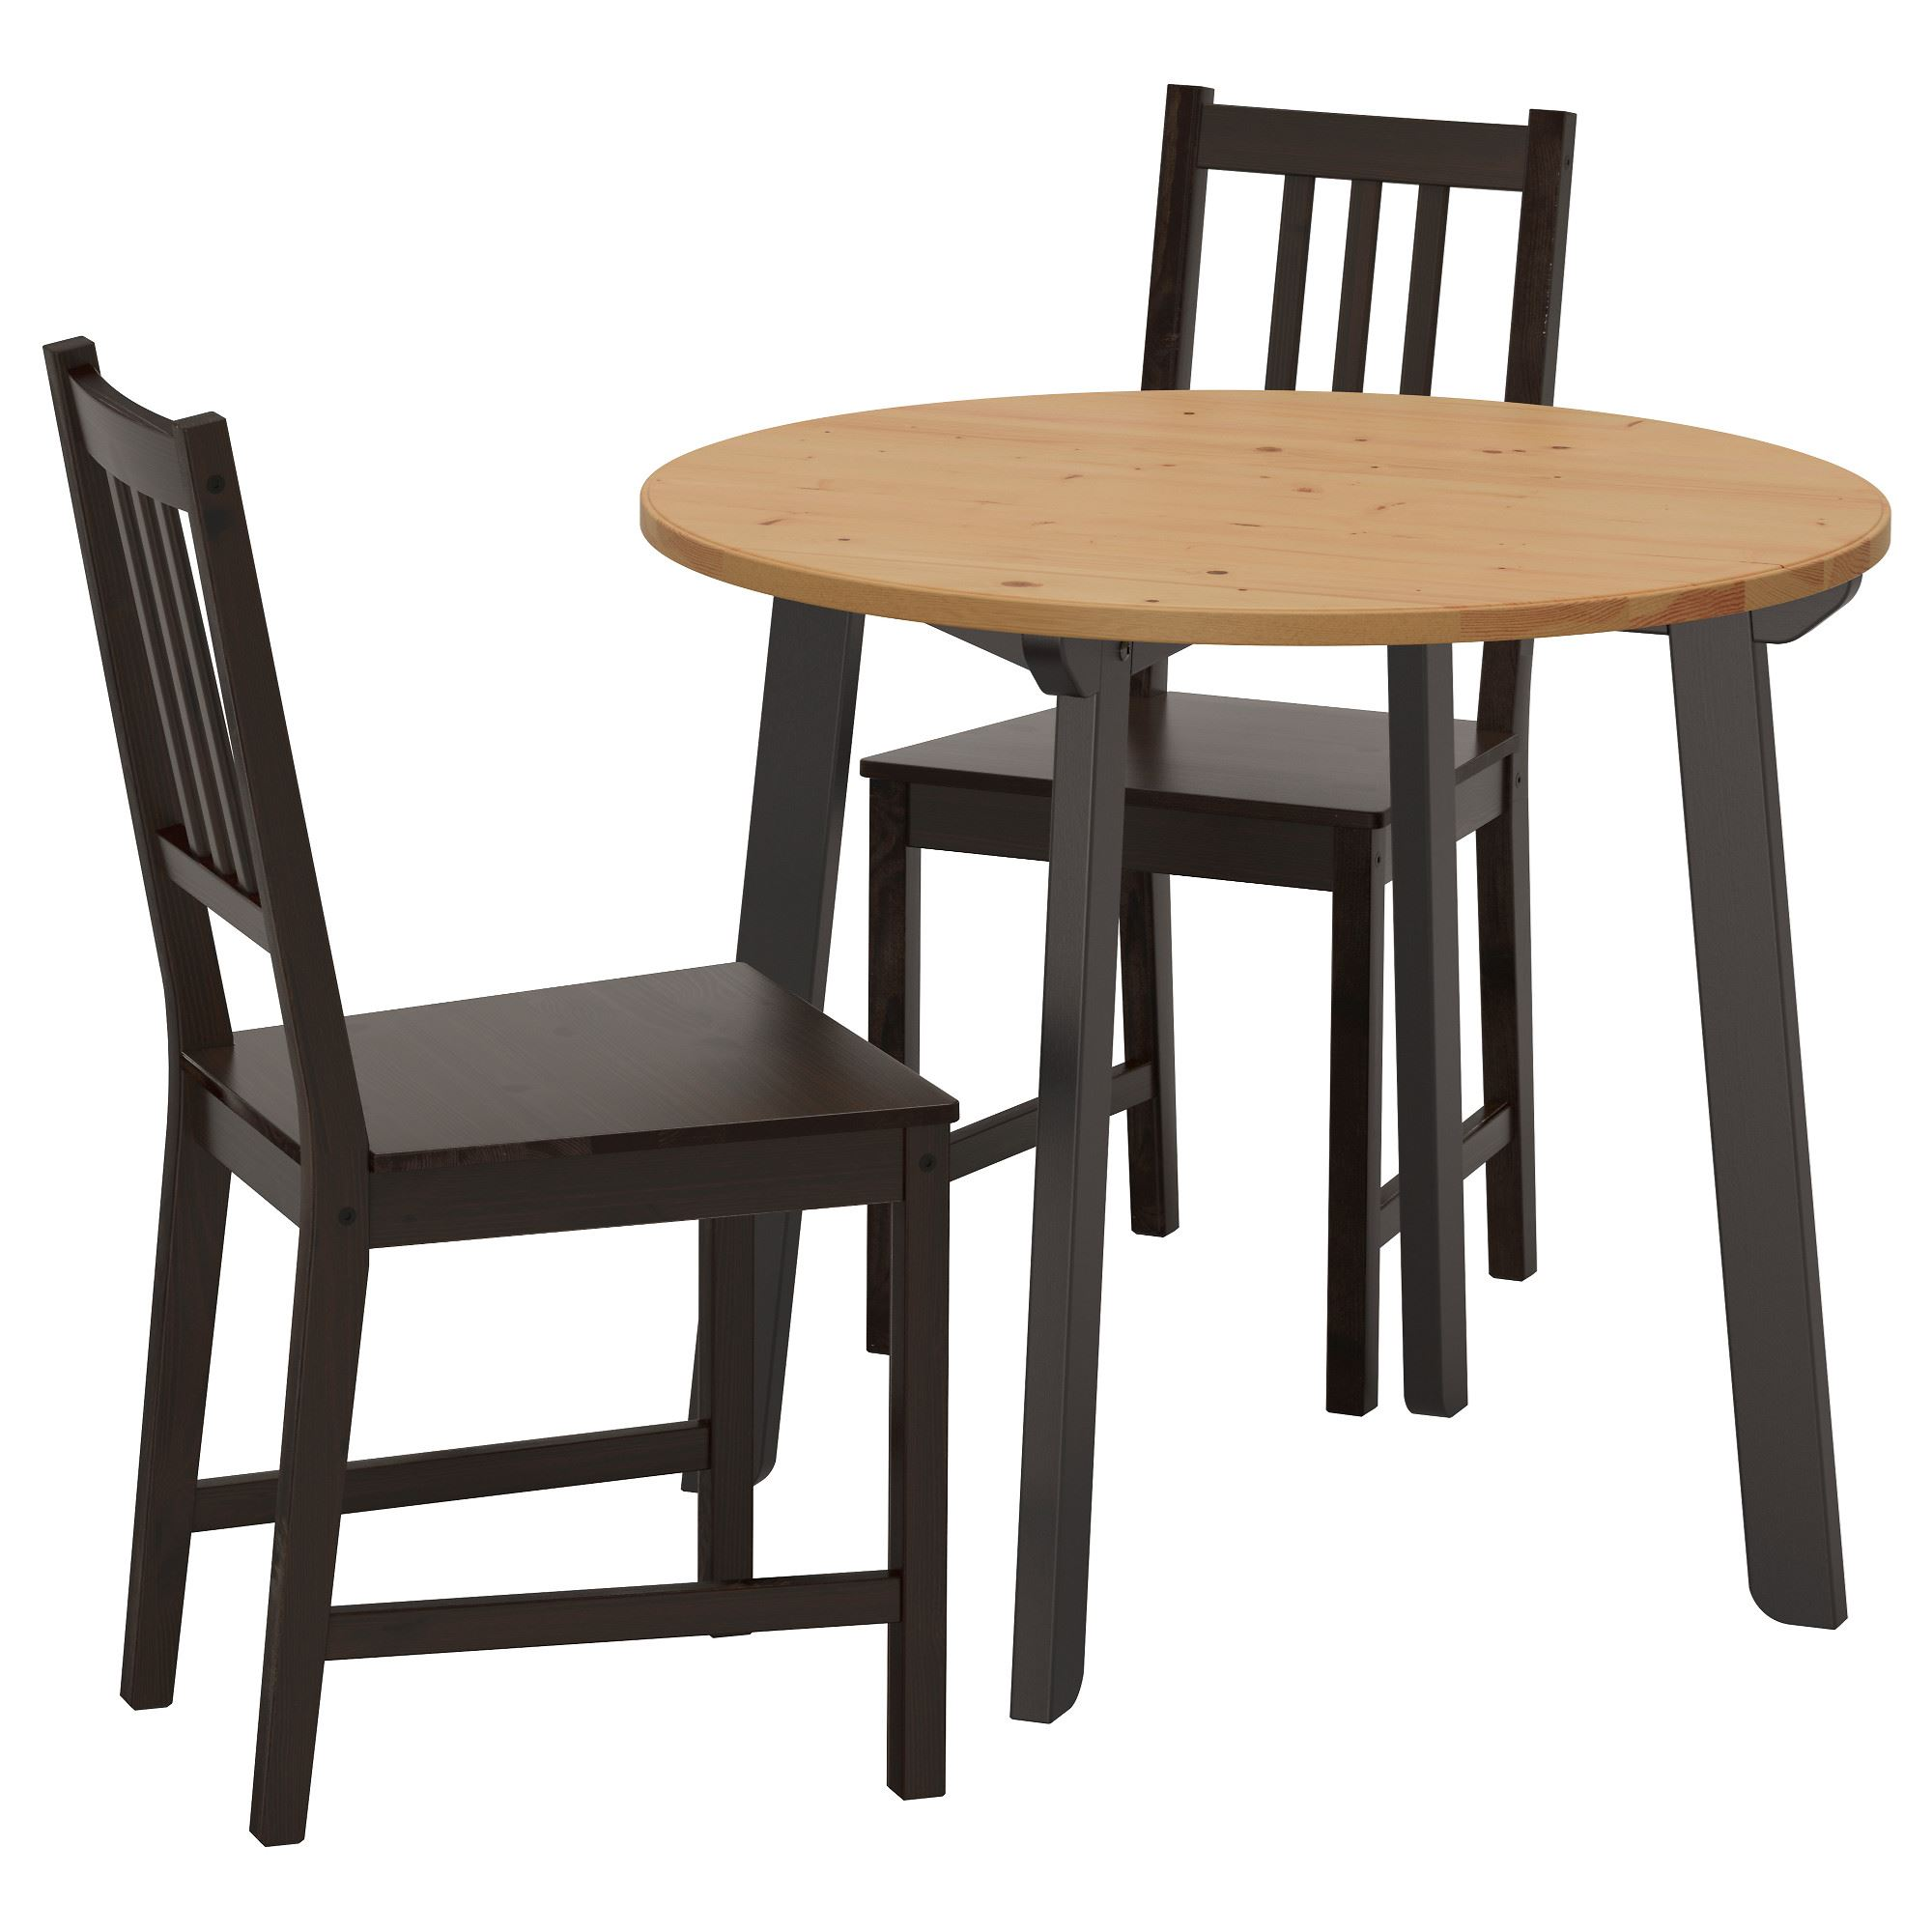 GAMLARED/STEFAN Dining Table And Chairs Light Antique